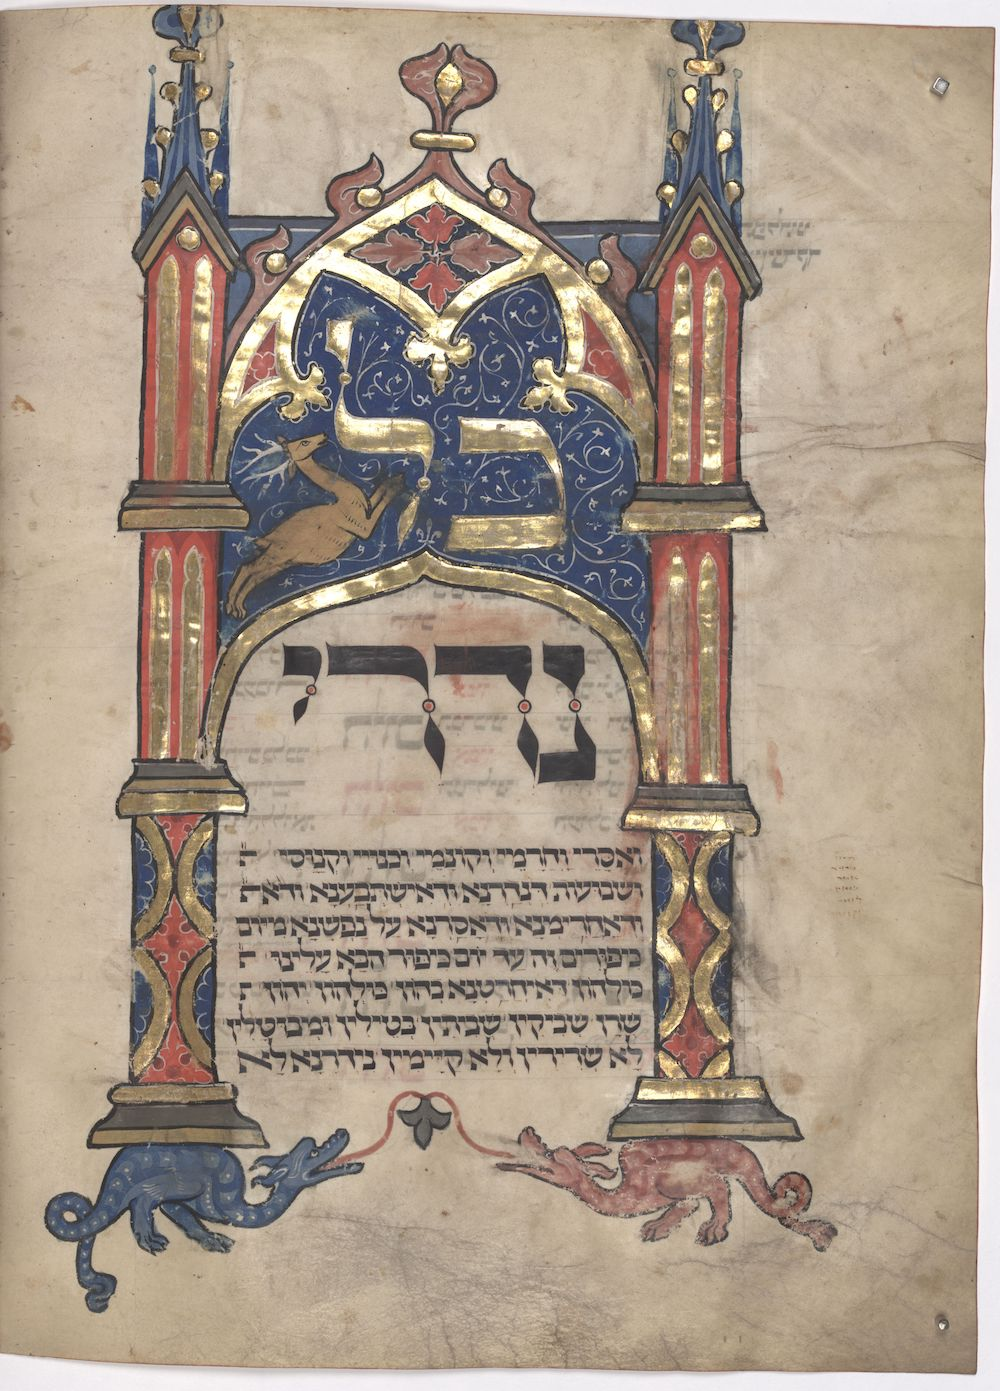 Manuscript page from a medieval Jewish text with elaborate illumination.